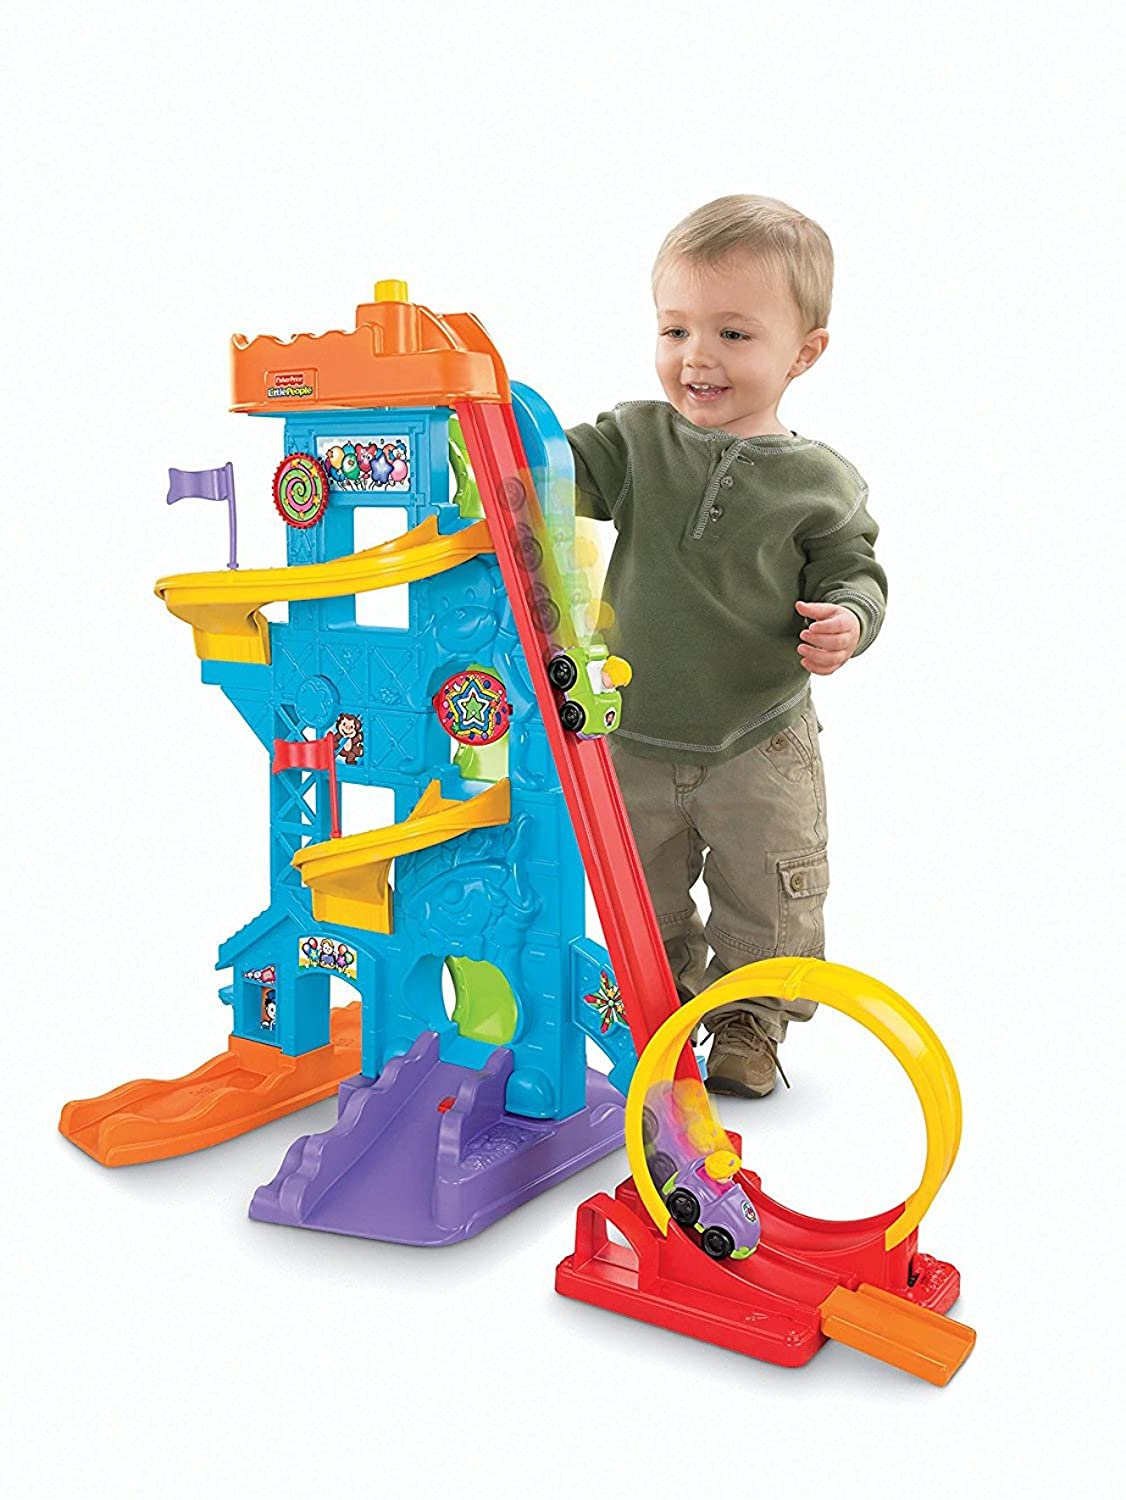 Though Two Year Olds Arent The Ideal Candidates For Roller Coaster Rides Or Theme Parks This Loops N Swoops Amusement Park Playset By Fisher Price Is